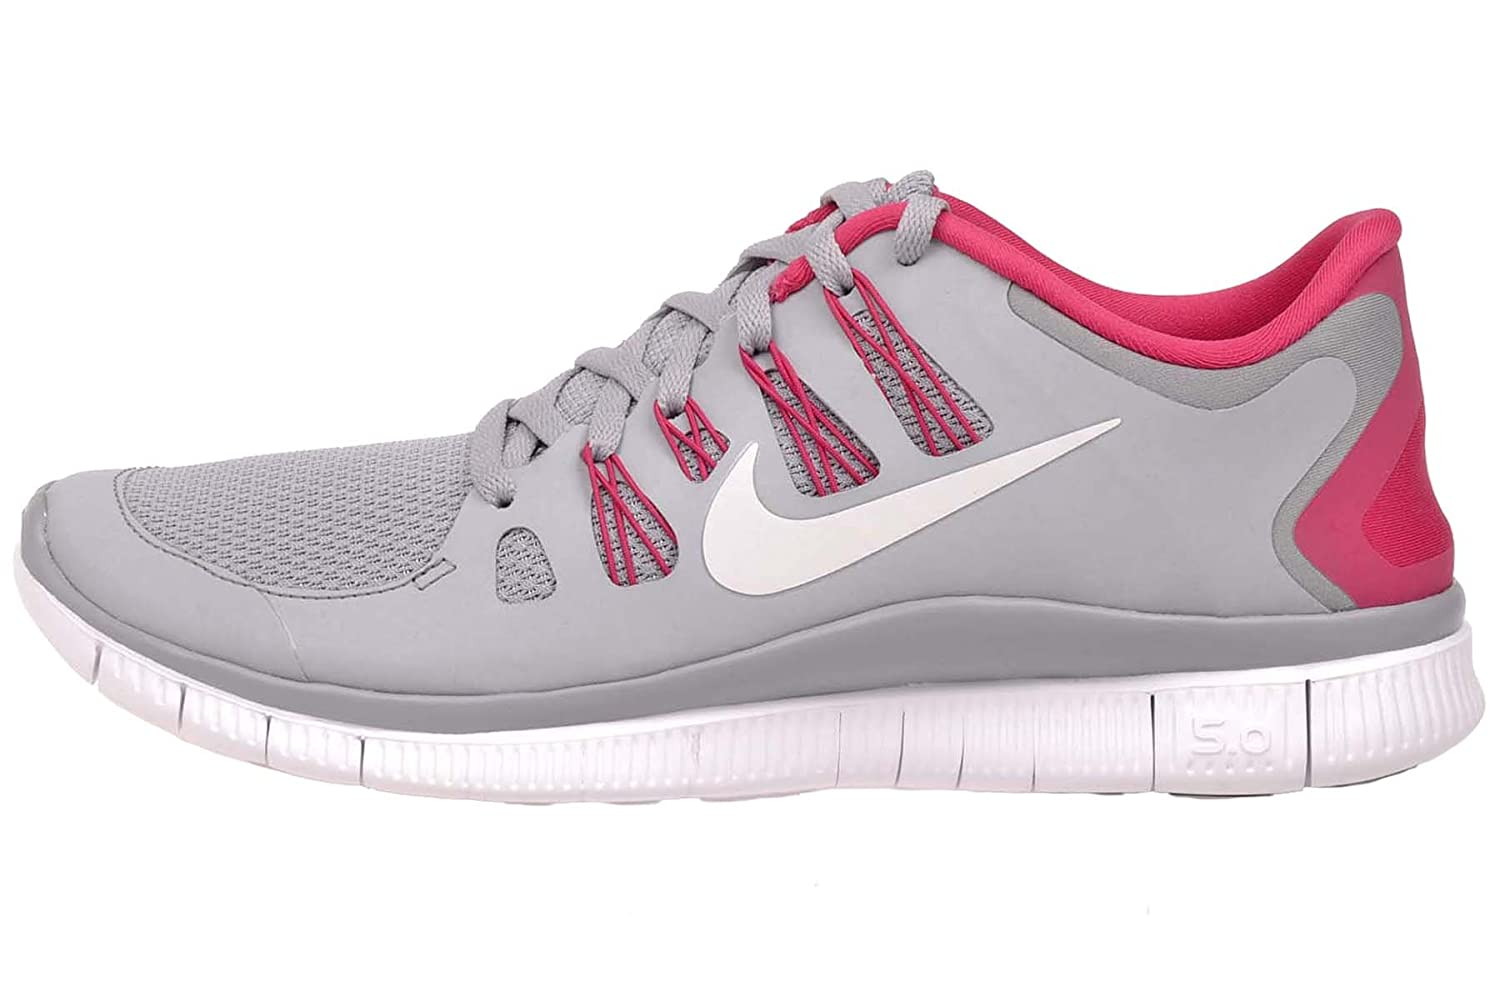 grande vente ebd3c e486d Nike Free 5.0+ Womens Running Shoes 580591-061 Wolf Grey/Pink Force-White  (12 M)